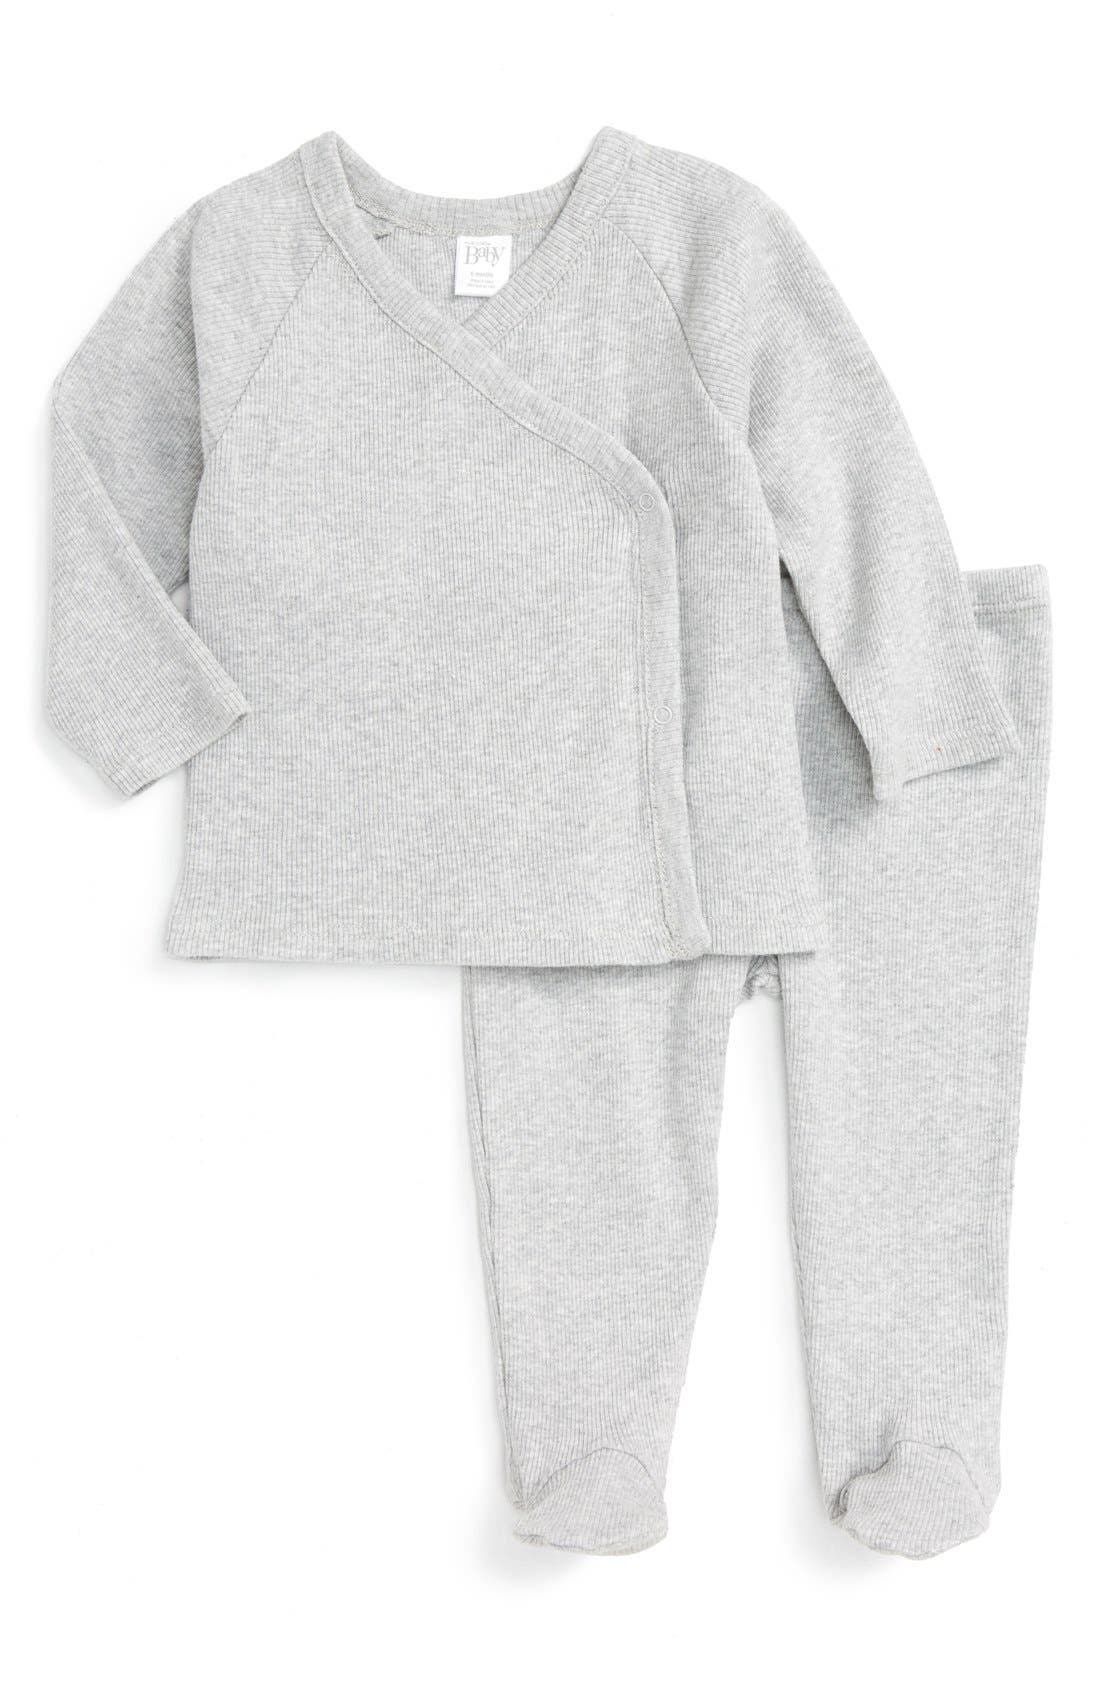 Nordstrom Baby Rib Knit T-Shirt & Pants Set (Baby)